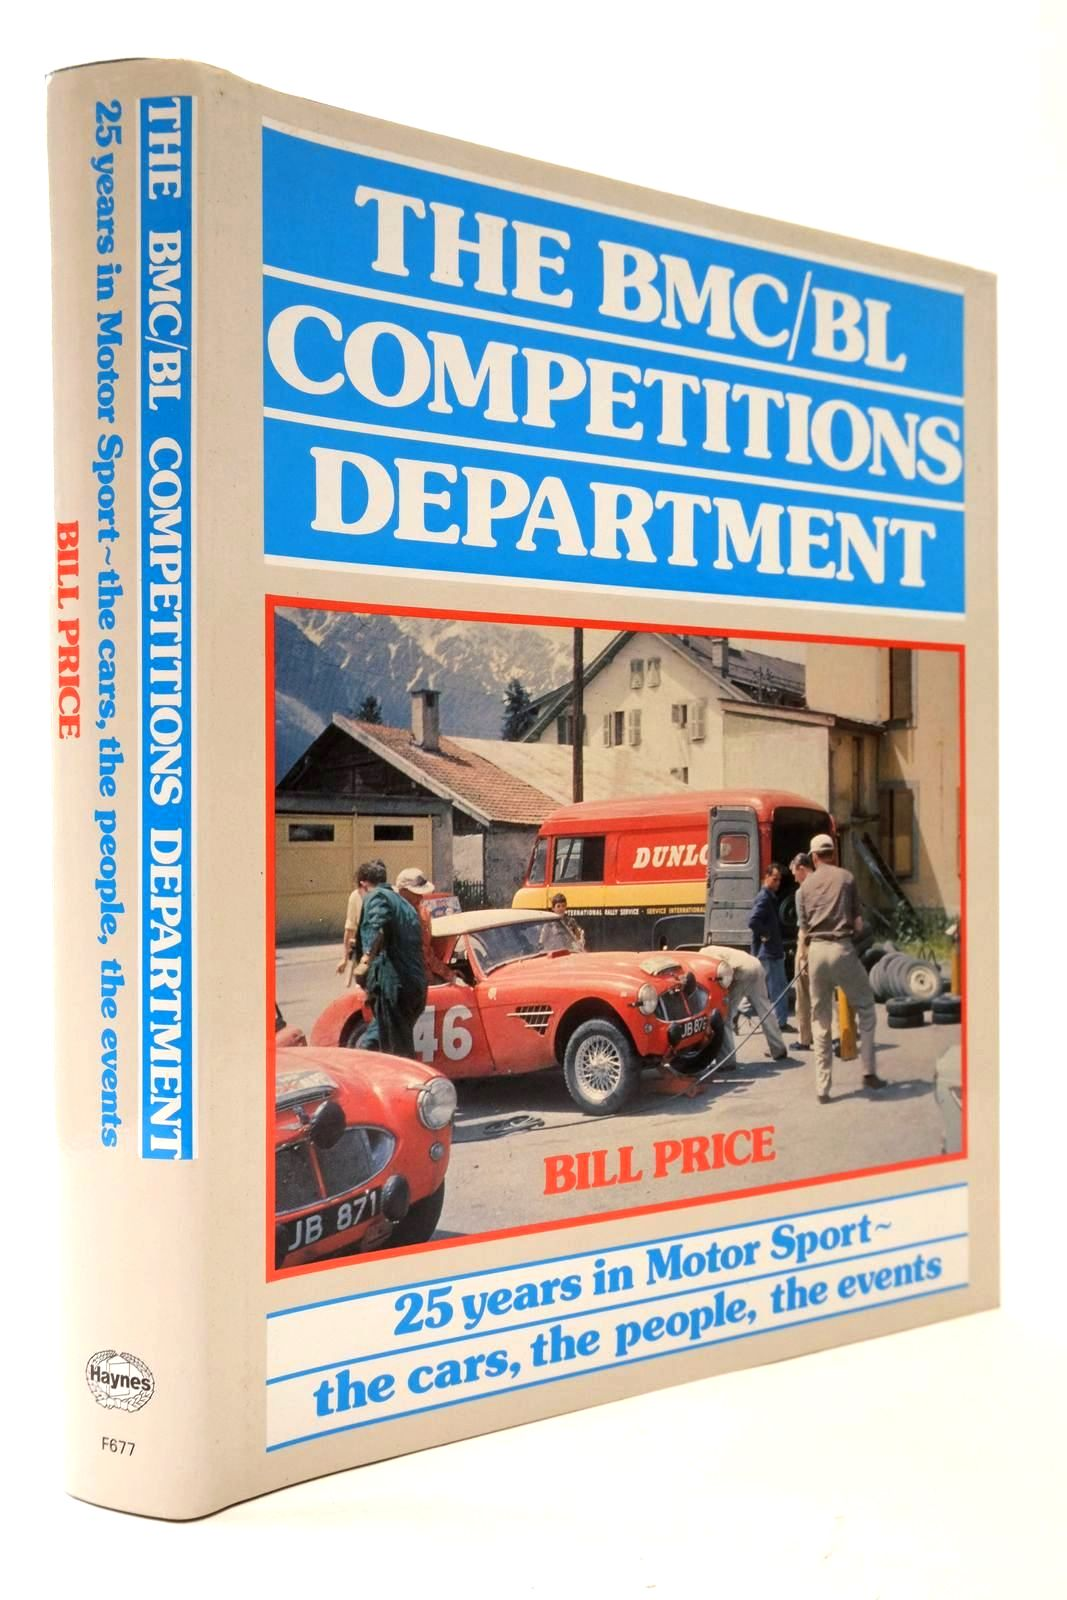 Photo of THE BMC/BL COMPETITIONS DEPARTMENT- Stock Number: 2132918